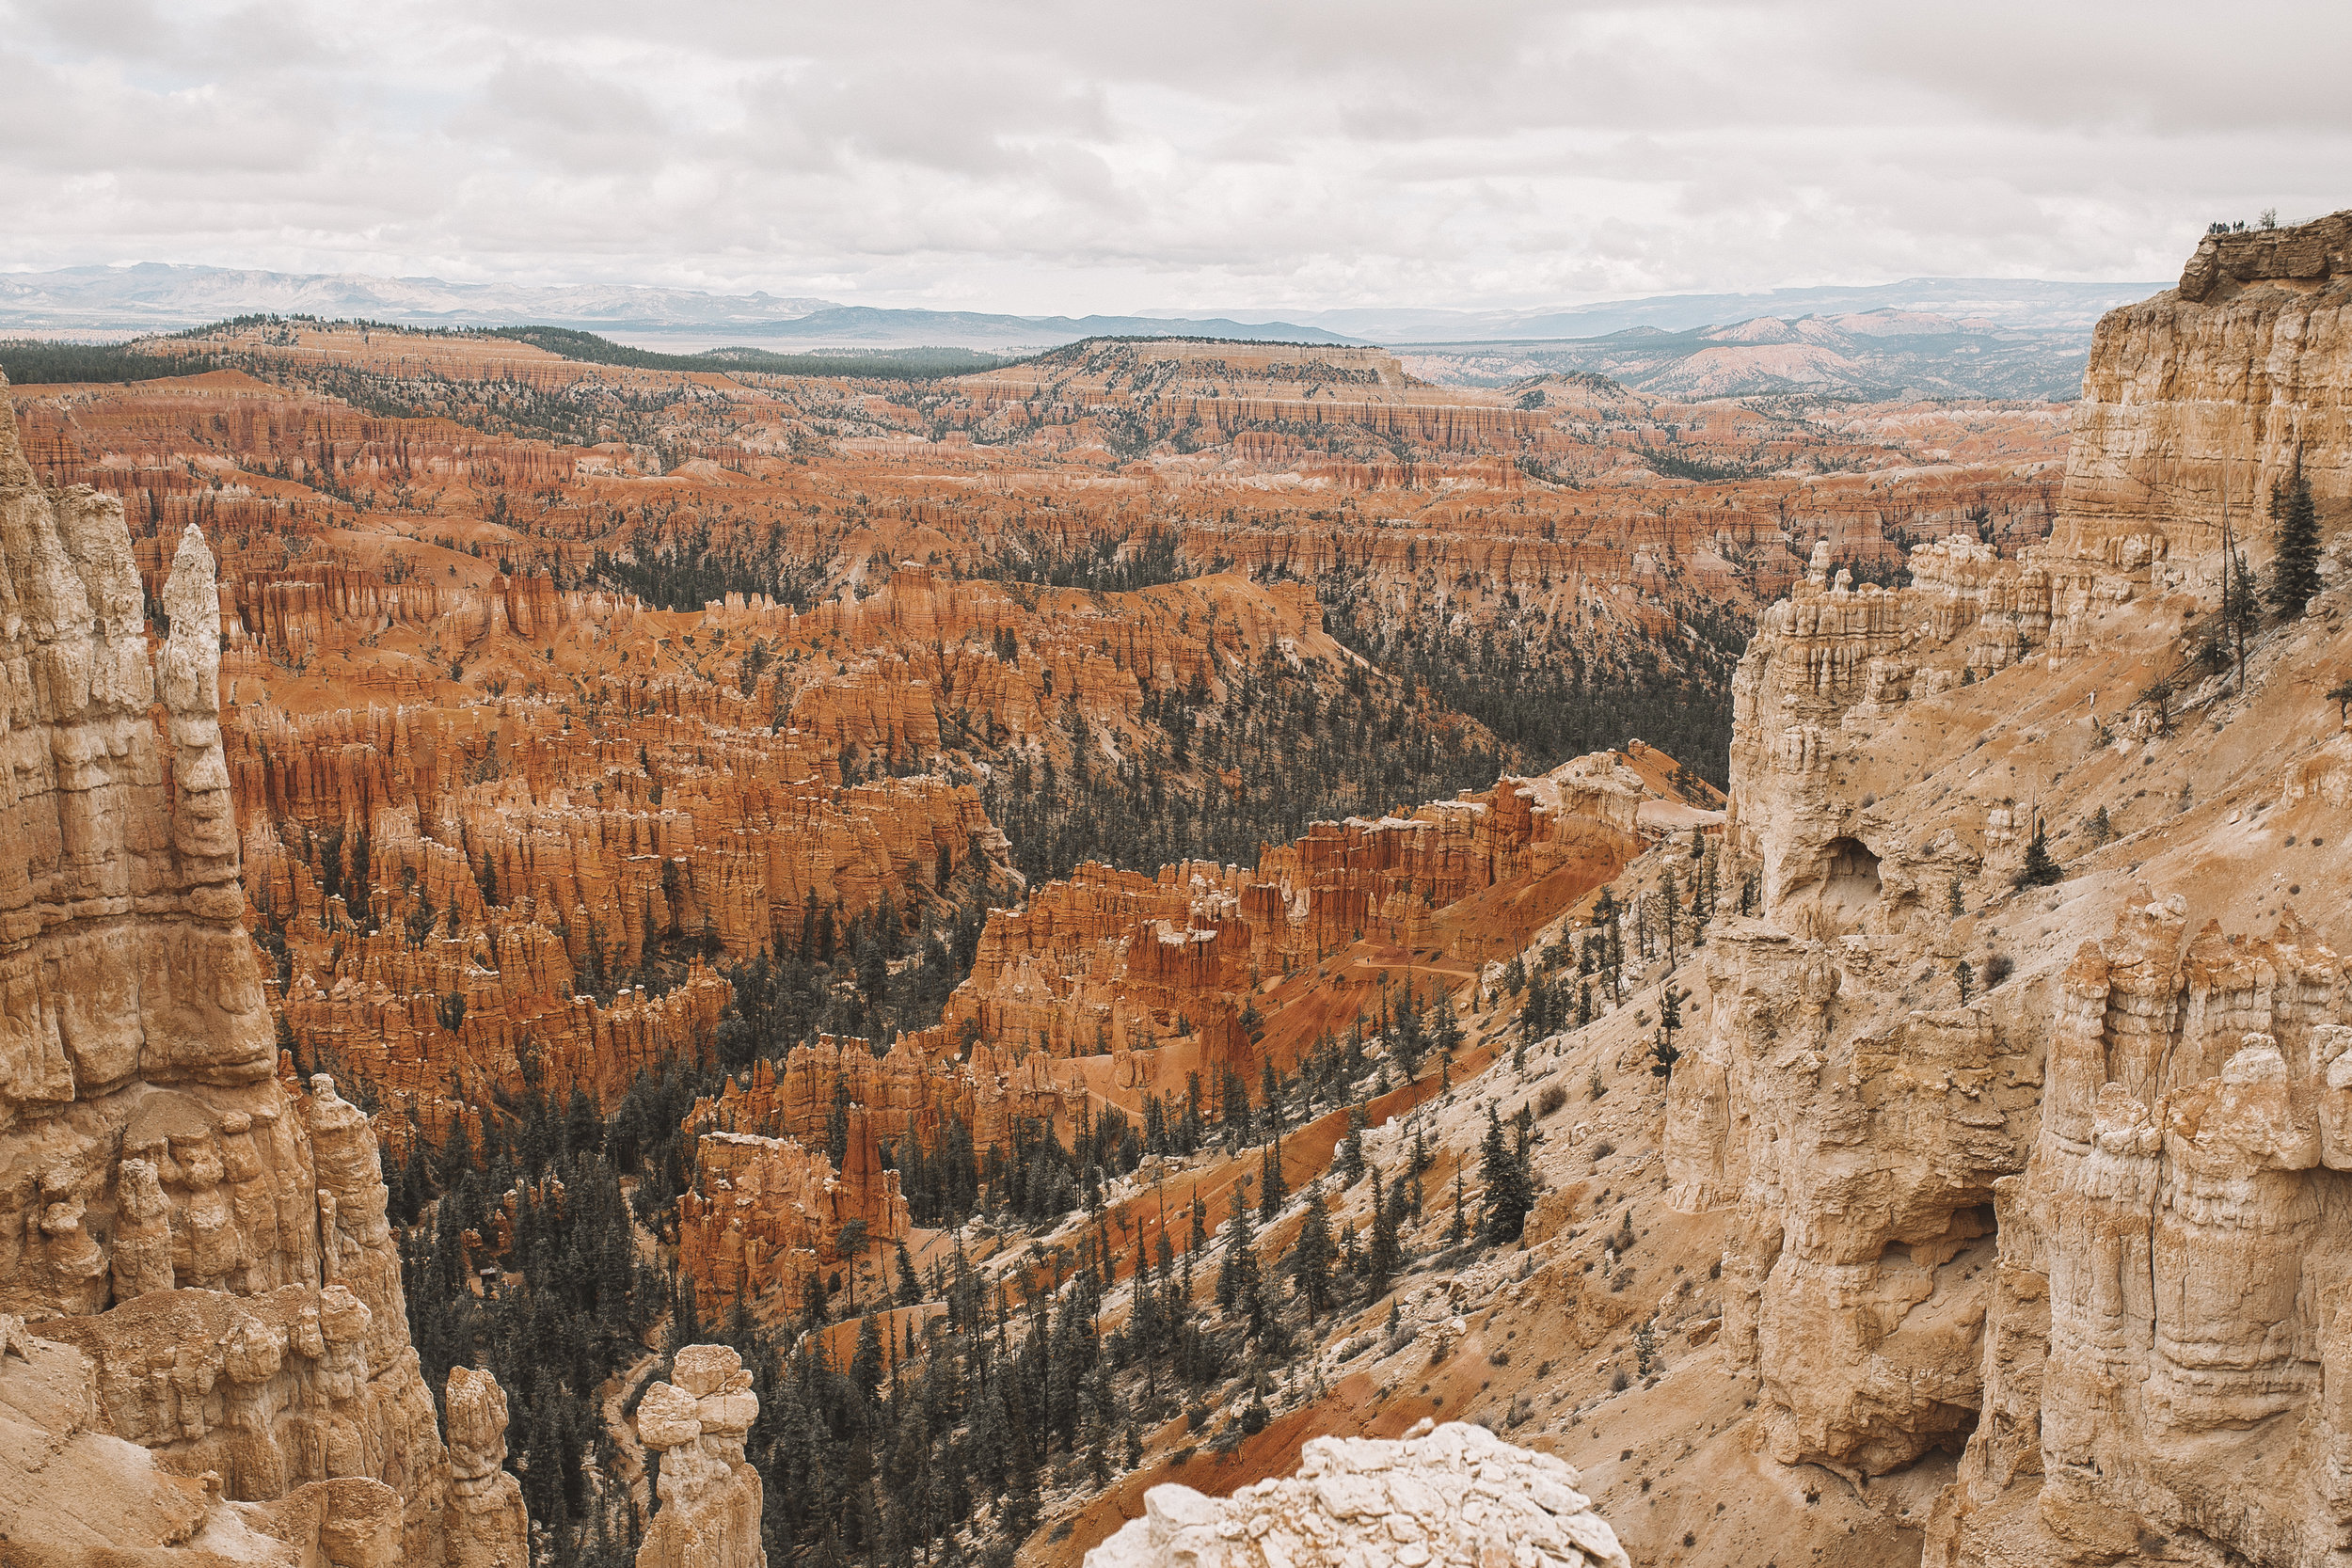 bryce canyon national park utah road trip-8.jpg